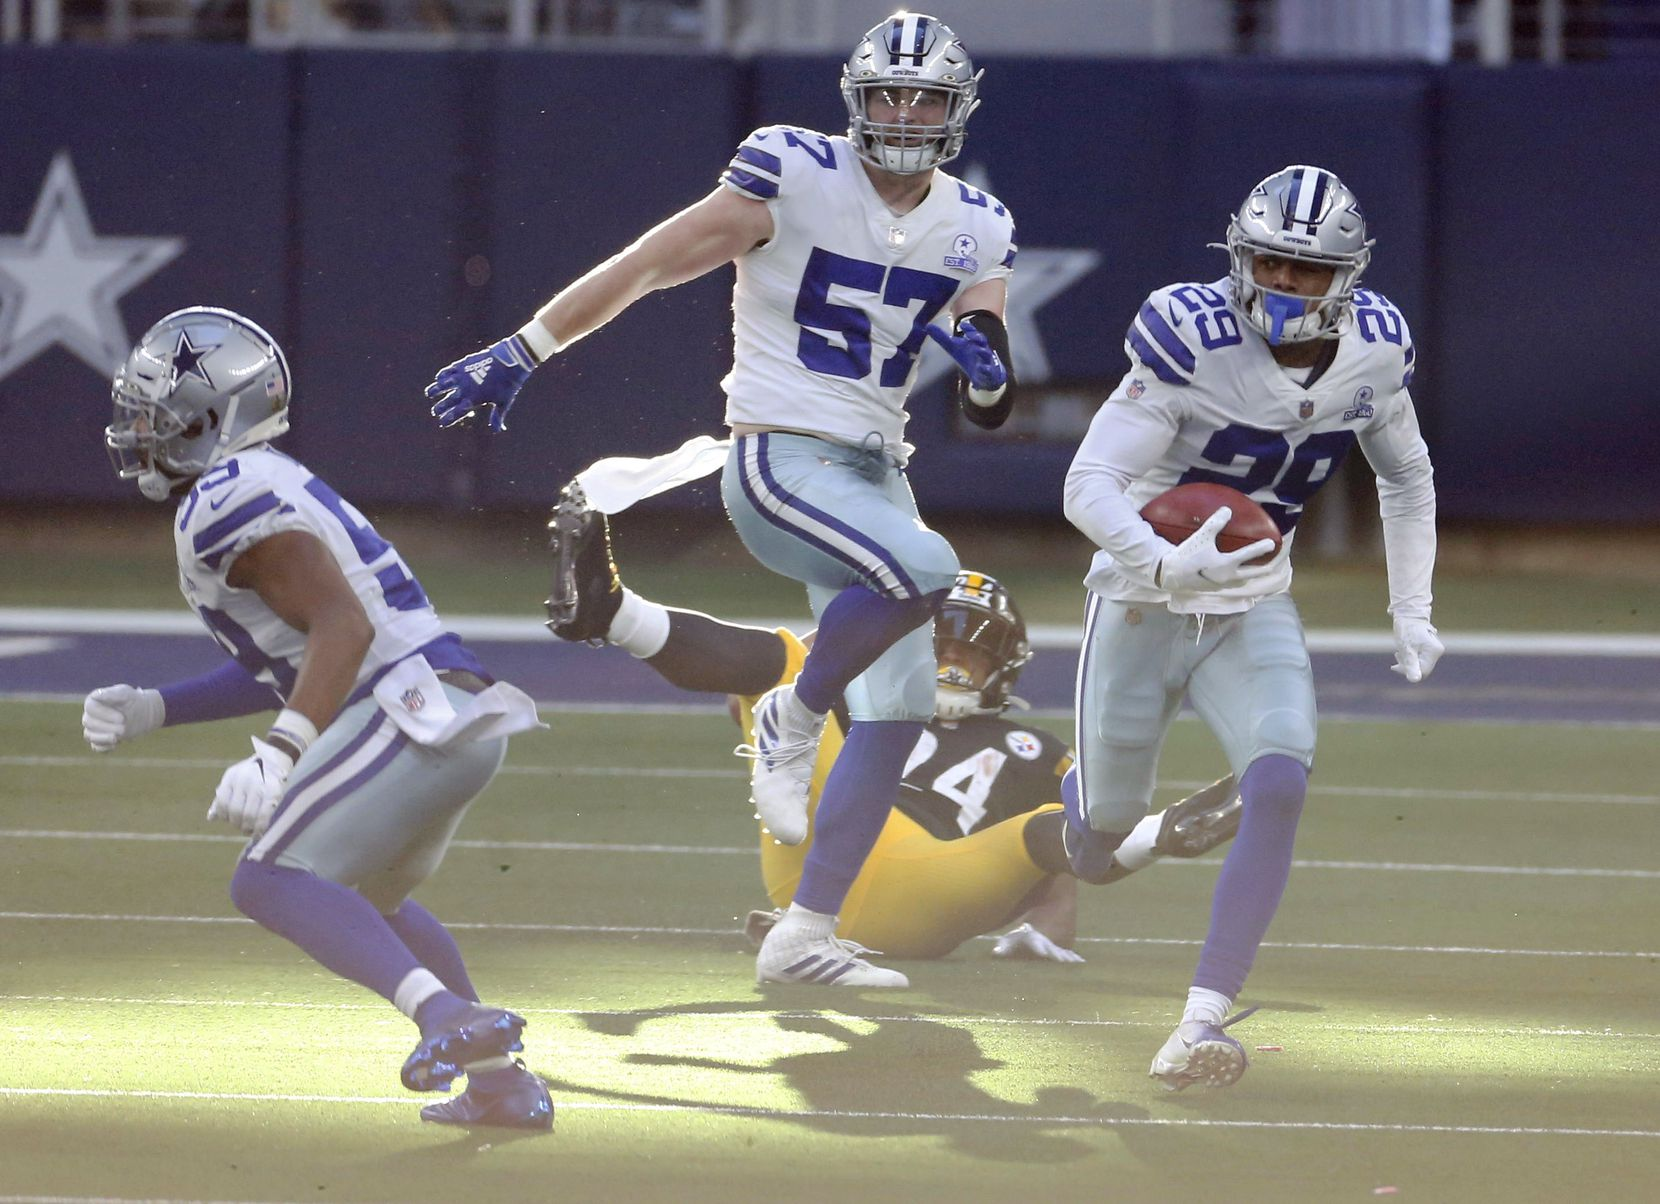 Dallas Cowboys cornerback C.J. Goodwin (29) runs up the field on a kickoff return in a game against the Pittsburgh Steelers during the second quarter of play at AT&T Stadium in Arlington, Texas on Sunday, November 8, 2020. (Vernon Bryant/The Dallas Morning News)